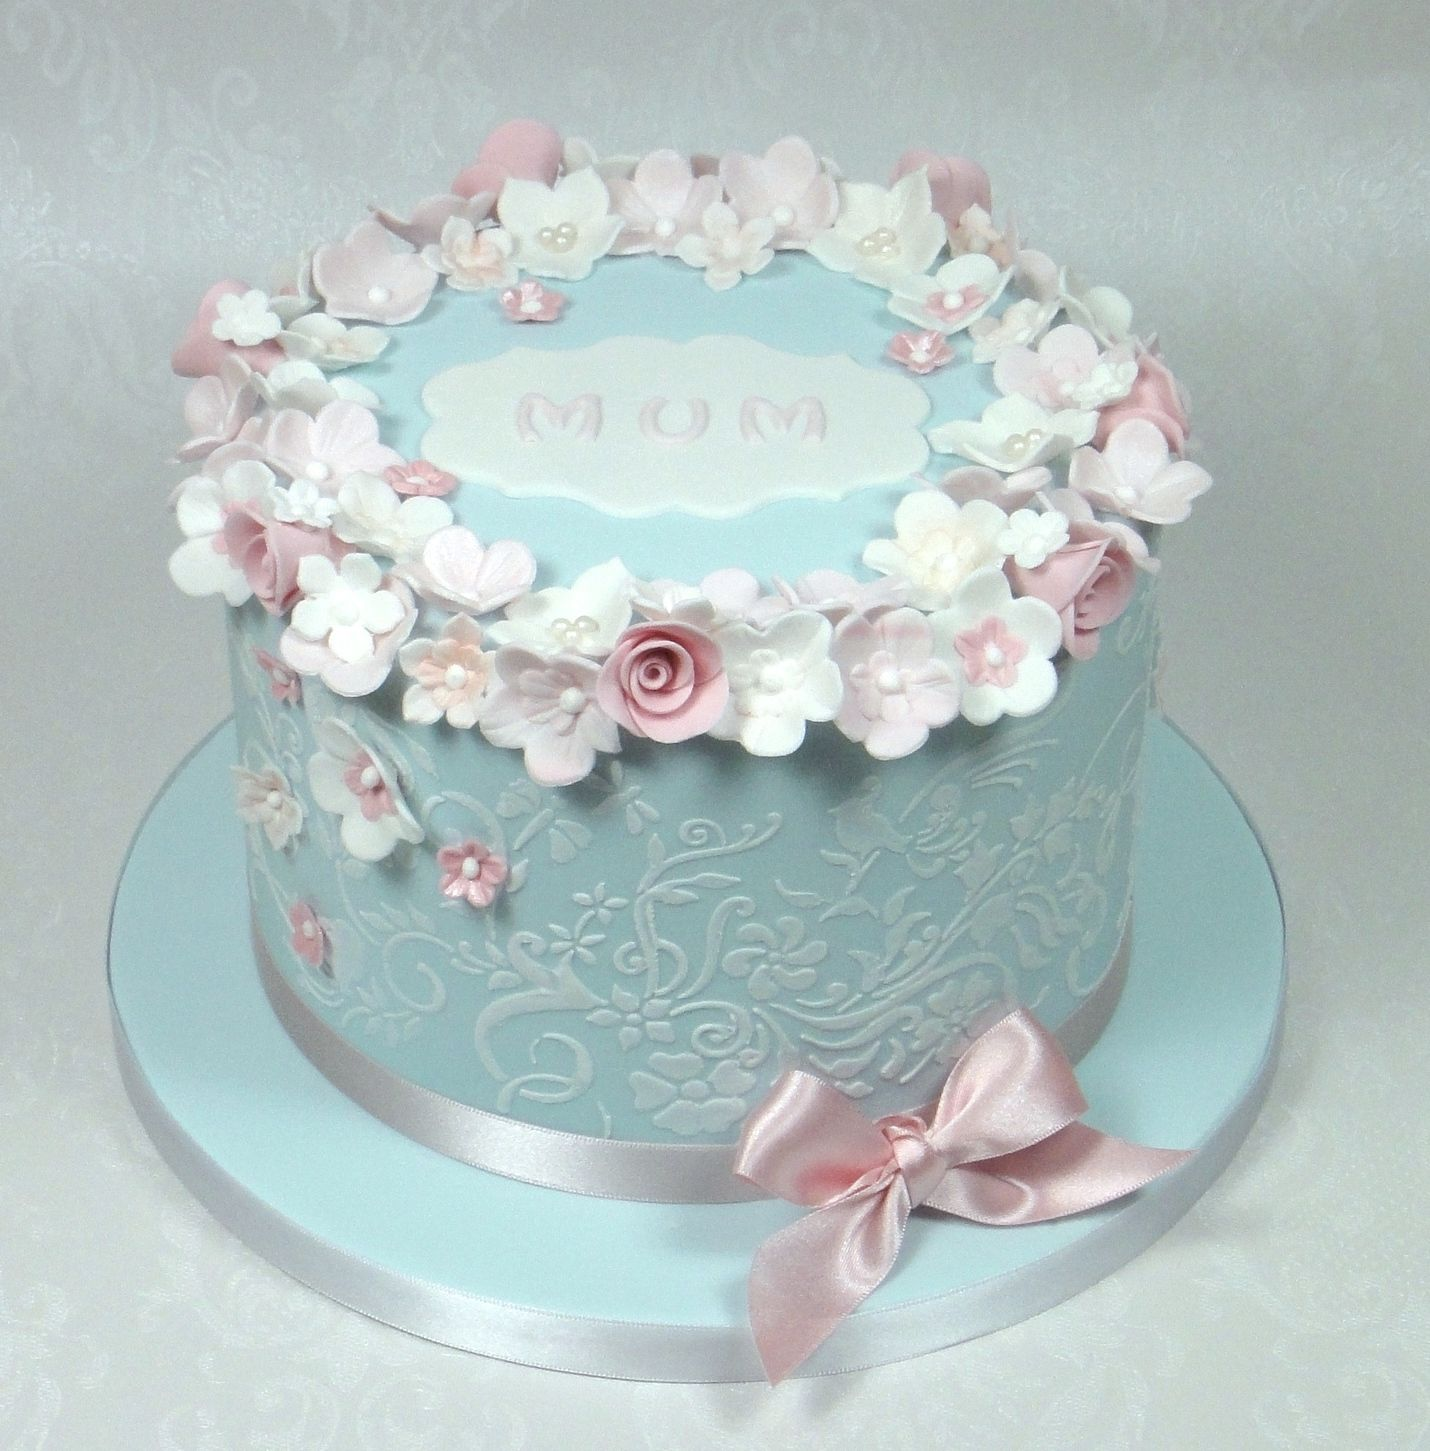 Vintage Themed Birthdaymothers Day Cake 07917815712 Facebook